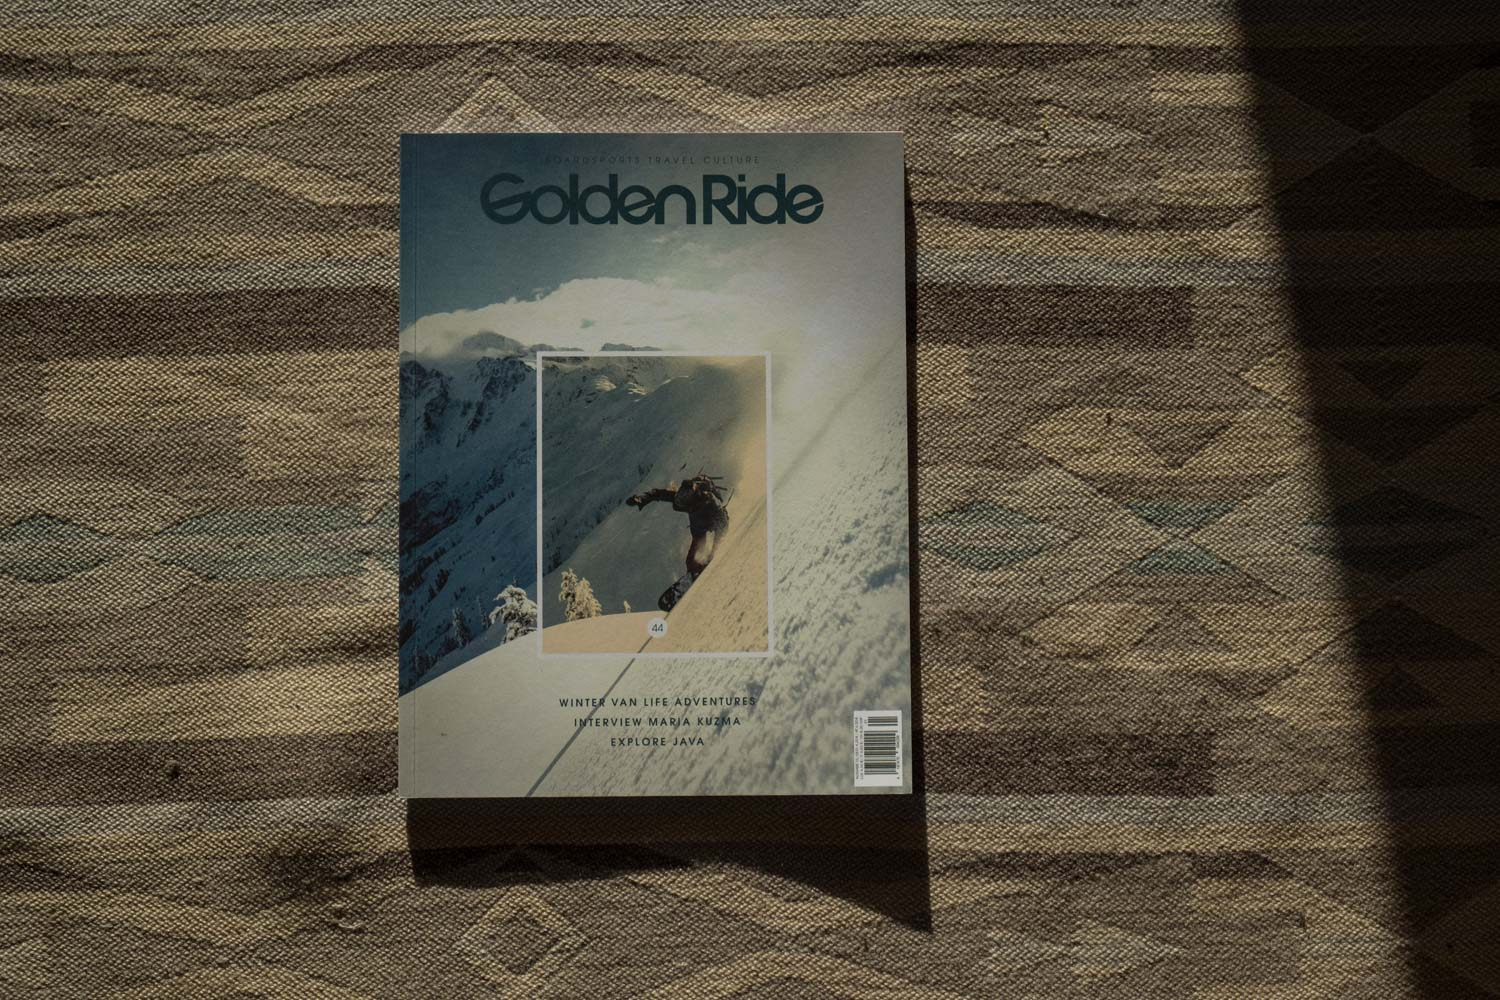 golden_ride_life_in_white_44.1.jpg